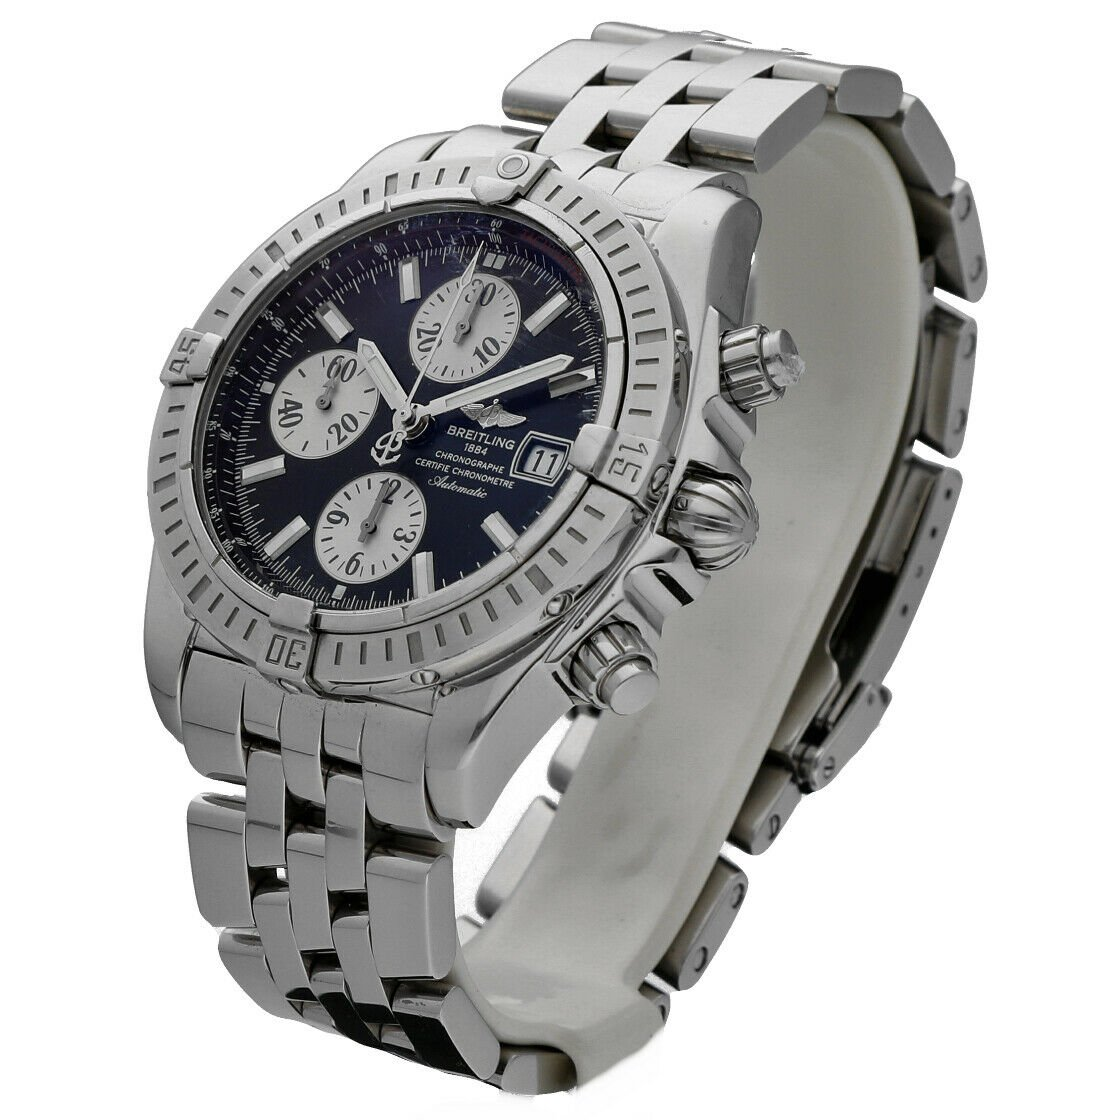 Breitling A13356 Chronomat Black Dial Chronograph Steel 44 Automatic Mens Watch 114241901873 2